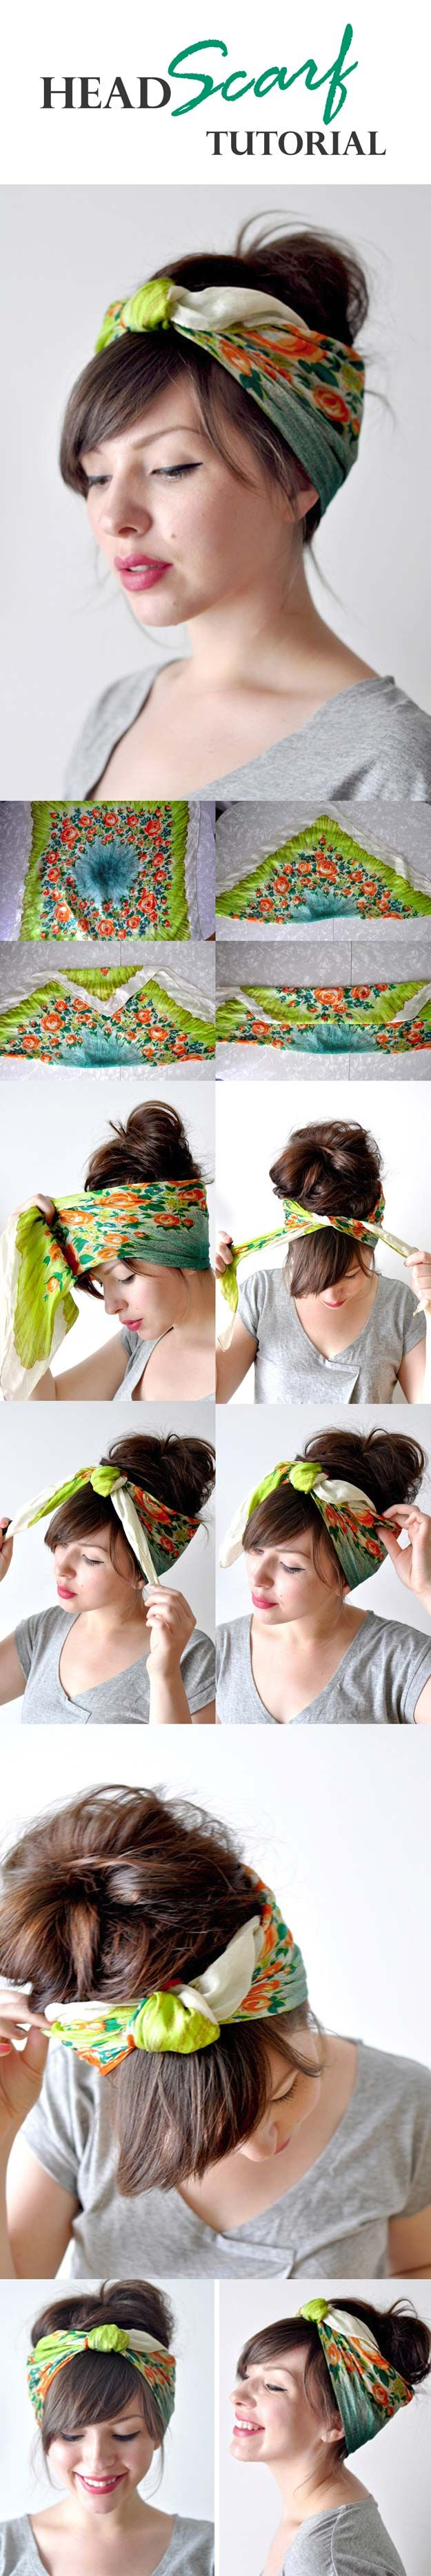 Festival Hair Tutorials - HEAD SCARF TUTORIAL - Short Quick and Easy Tutorial Guides and How Tos for Braids, Curly Hair, Long Hair, Medium Hair, and that Perfect Updo - Great Ideas for That Summer Music Edm Show, Whether It's A New Hair Color or Some Awesome Accessories and Flowers - Boho and Bohemian Styles with Glitter and a Headband - thegoddess.com/festival-hair-tutorials